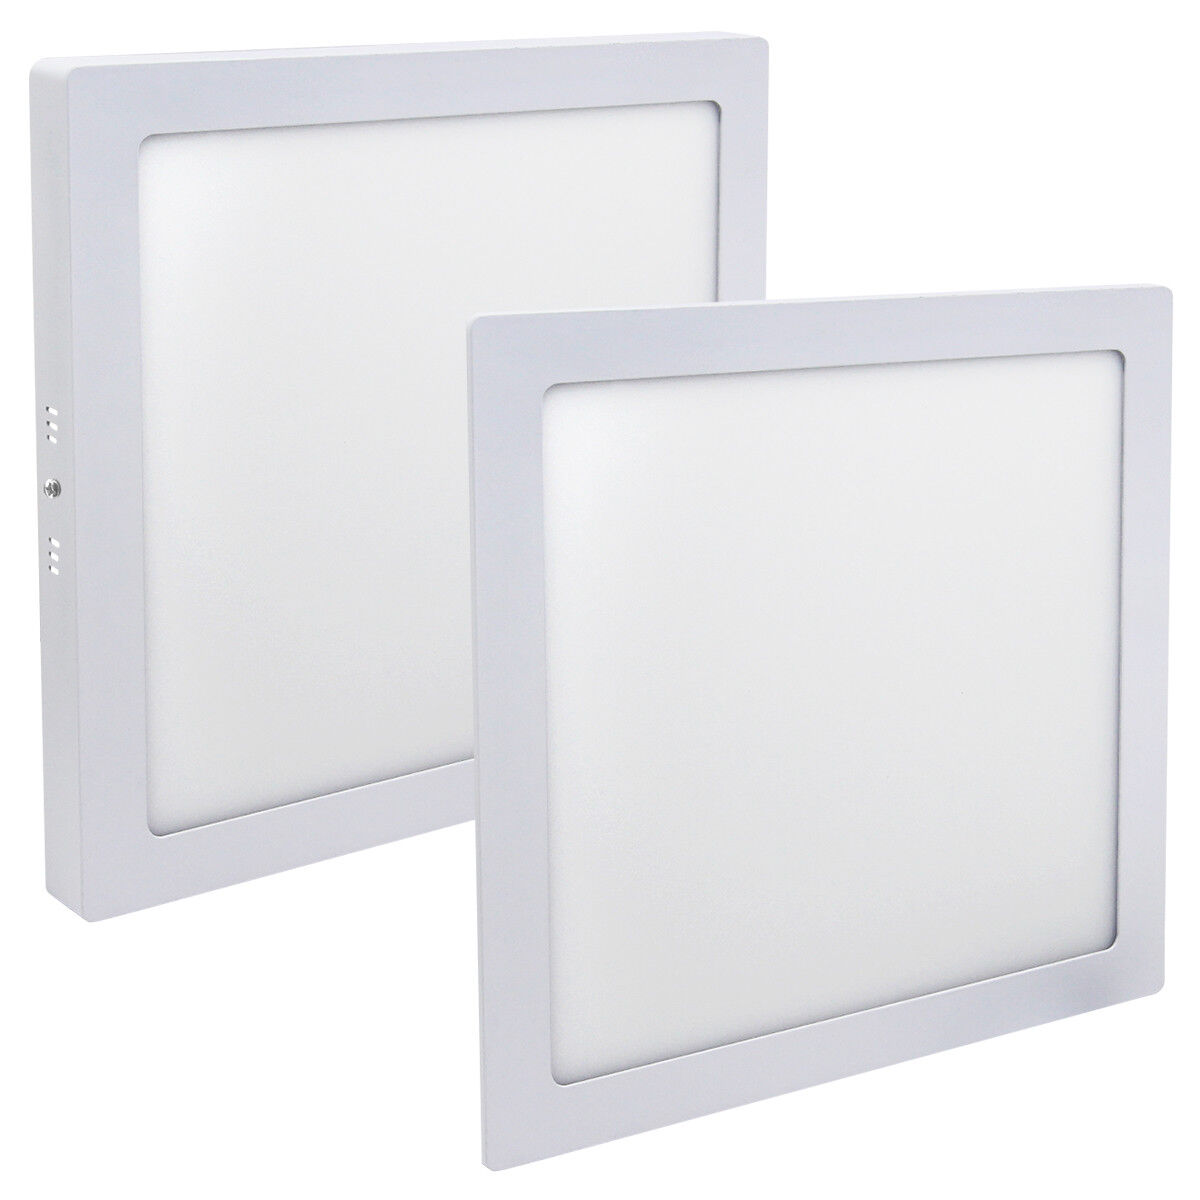 Led Panel Light Square And Round 24w Led Recessed Surface Mount Ceiling Panel Light 300 X